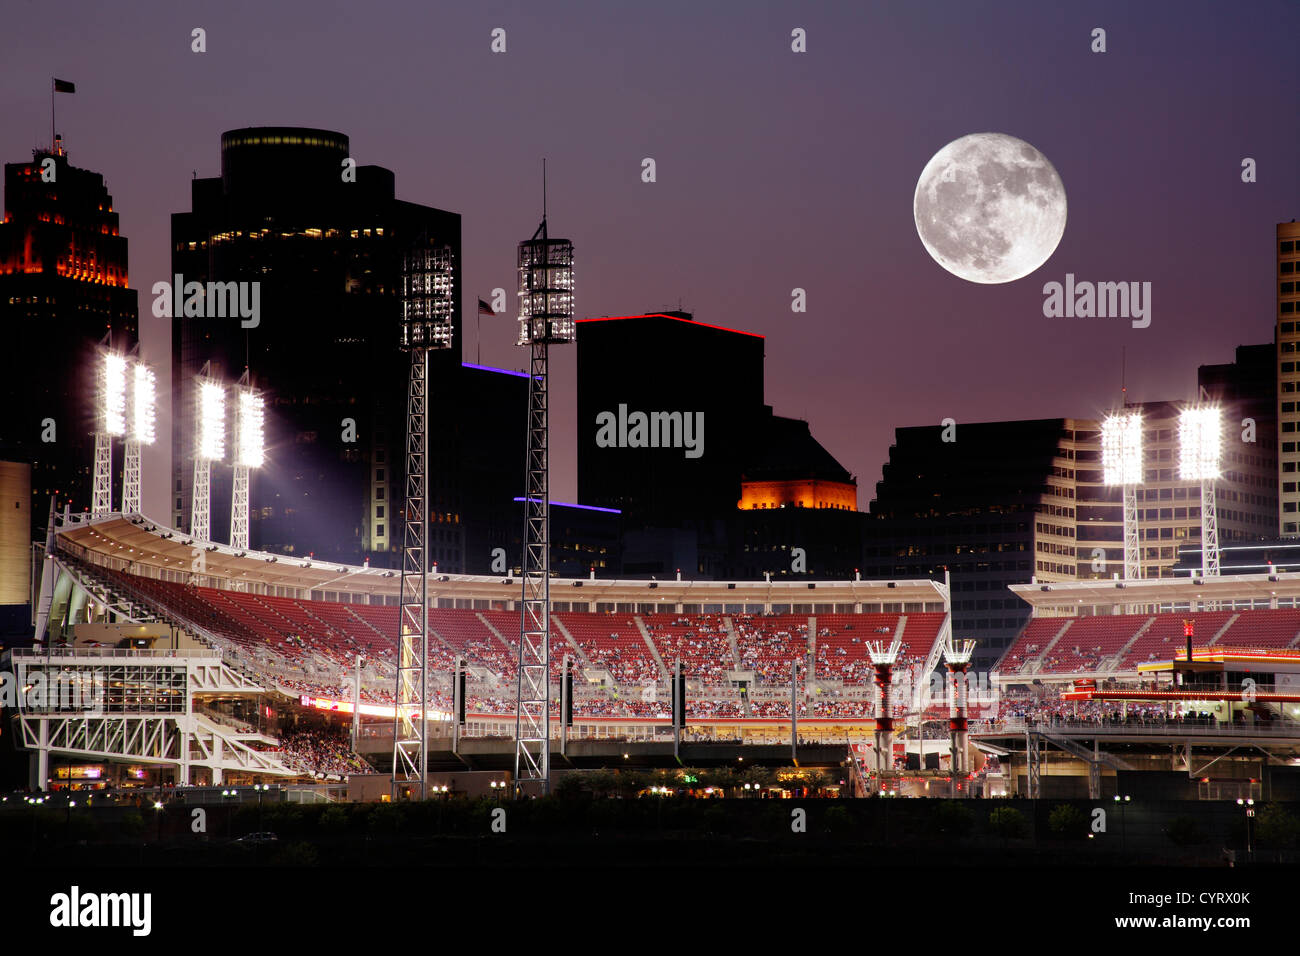 Moonrise Over Cincinnati Ohio After Sunset, Baseball Night In The Queen City On The Ohio River, USA - Stock Image